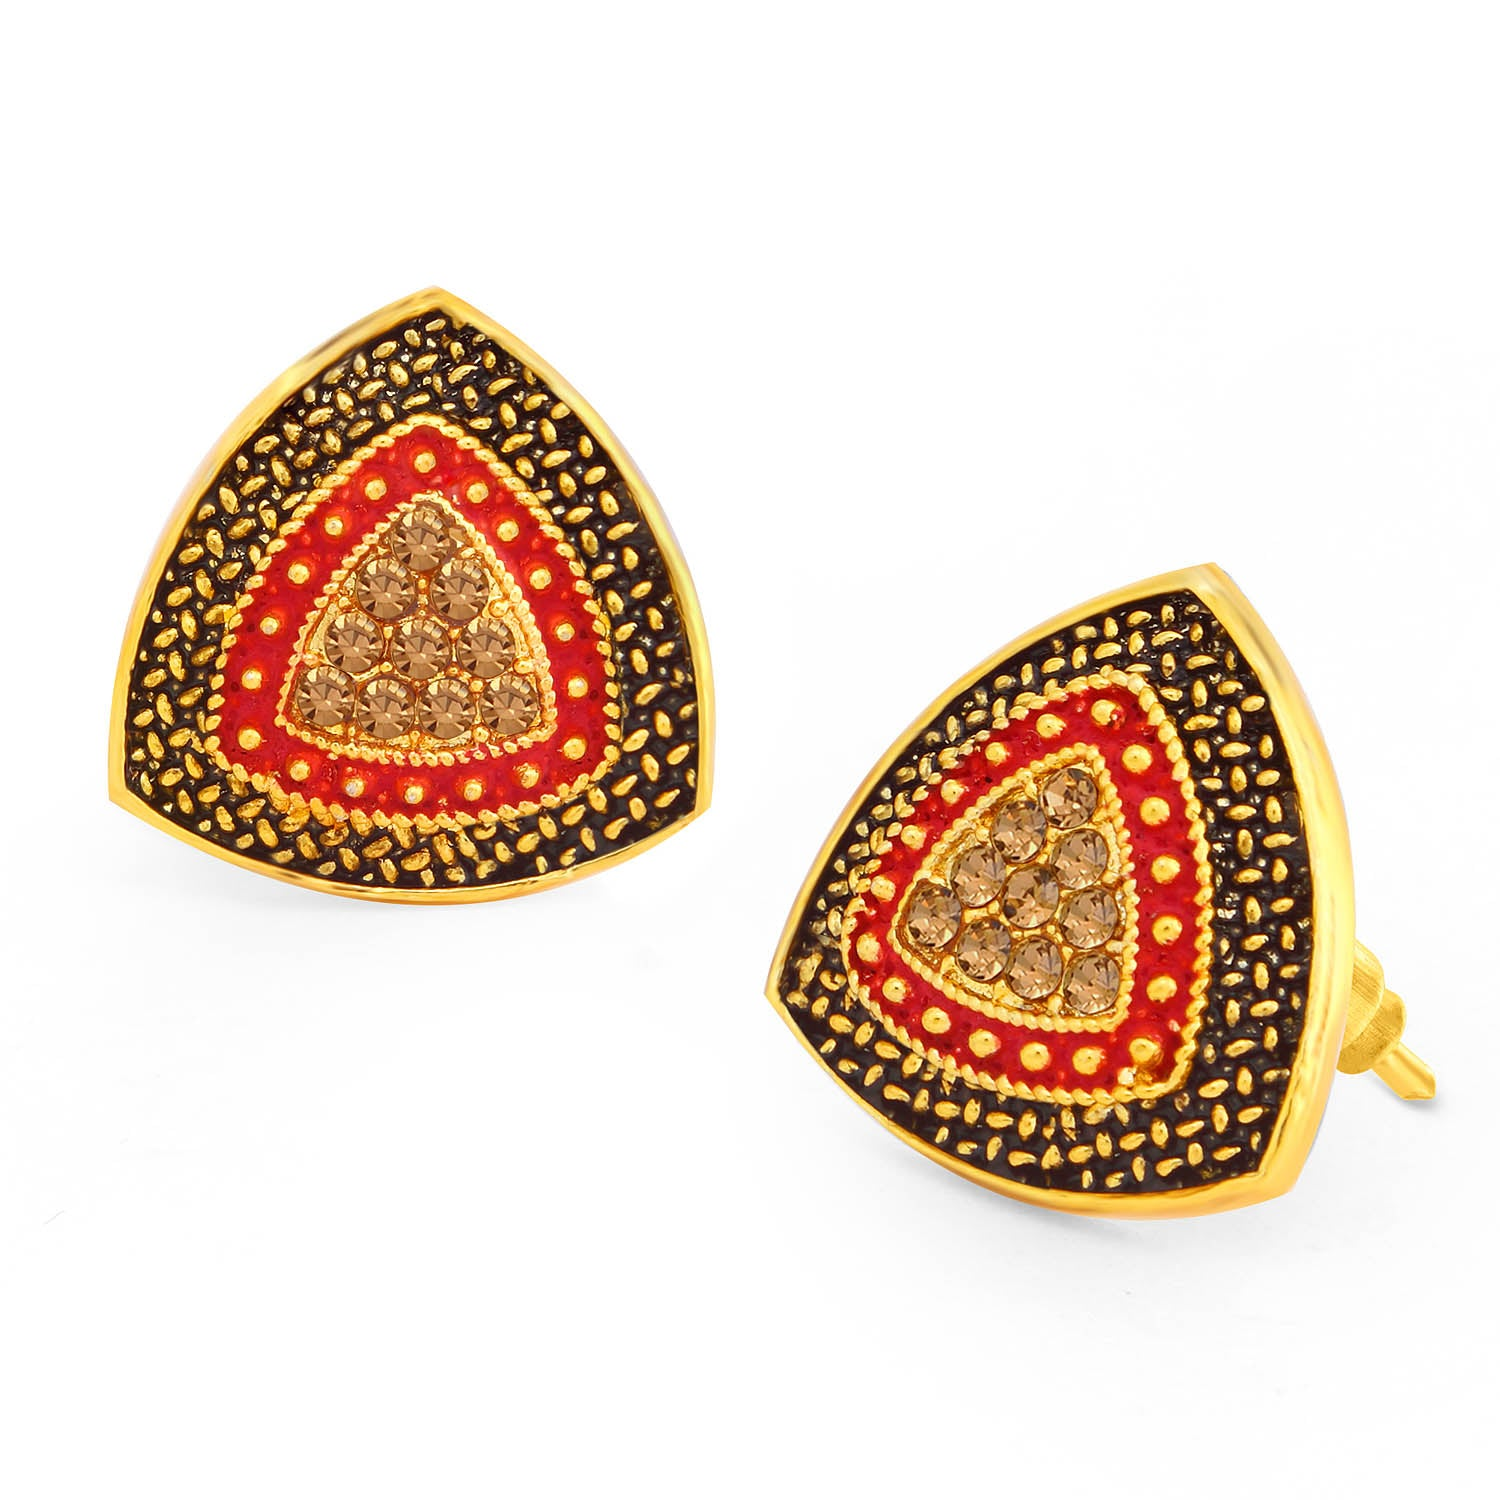 Sukkhi Beautiful LCT Stone Gold Plated Red Mint Meena Collection Stud Earring For Women-SUKKHI1-Earring